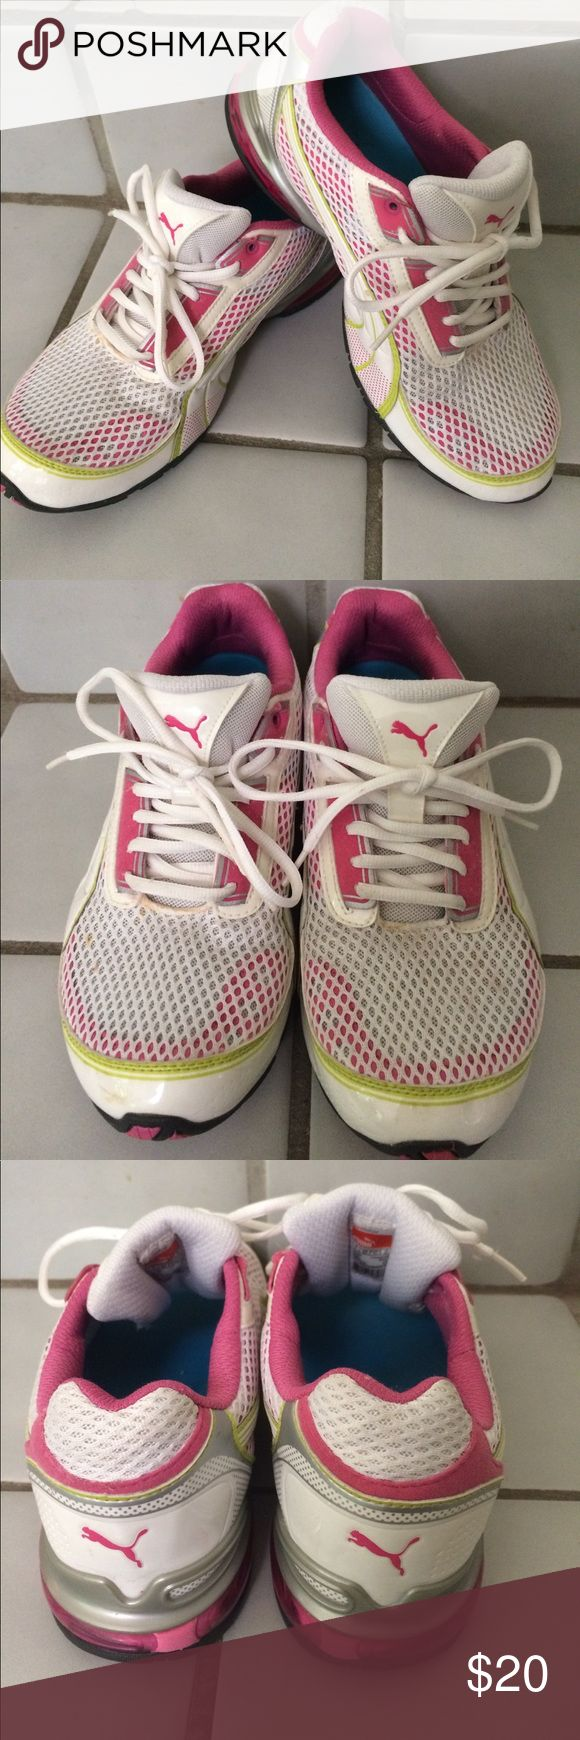 Puma Sport Shoes - pink, lime green and white! EUC This is a listing for a pair of Puma sport shoes. EUC. A little staining on front (shown in pics) - would probably easily come out. Only worn about 5 times. Pink, Lime Green & white with a some silver accents. Puma Shoes Athletic Shoes